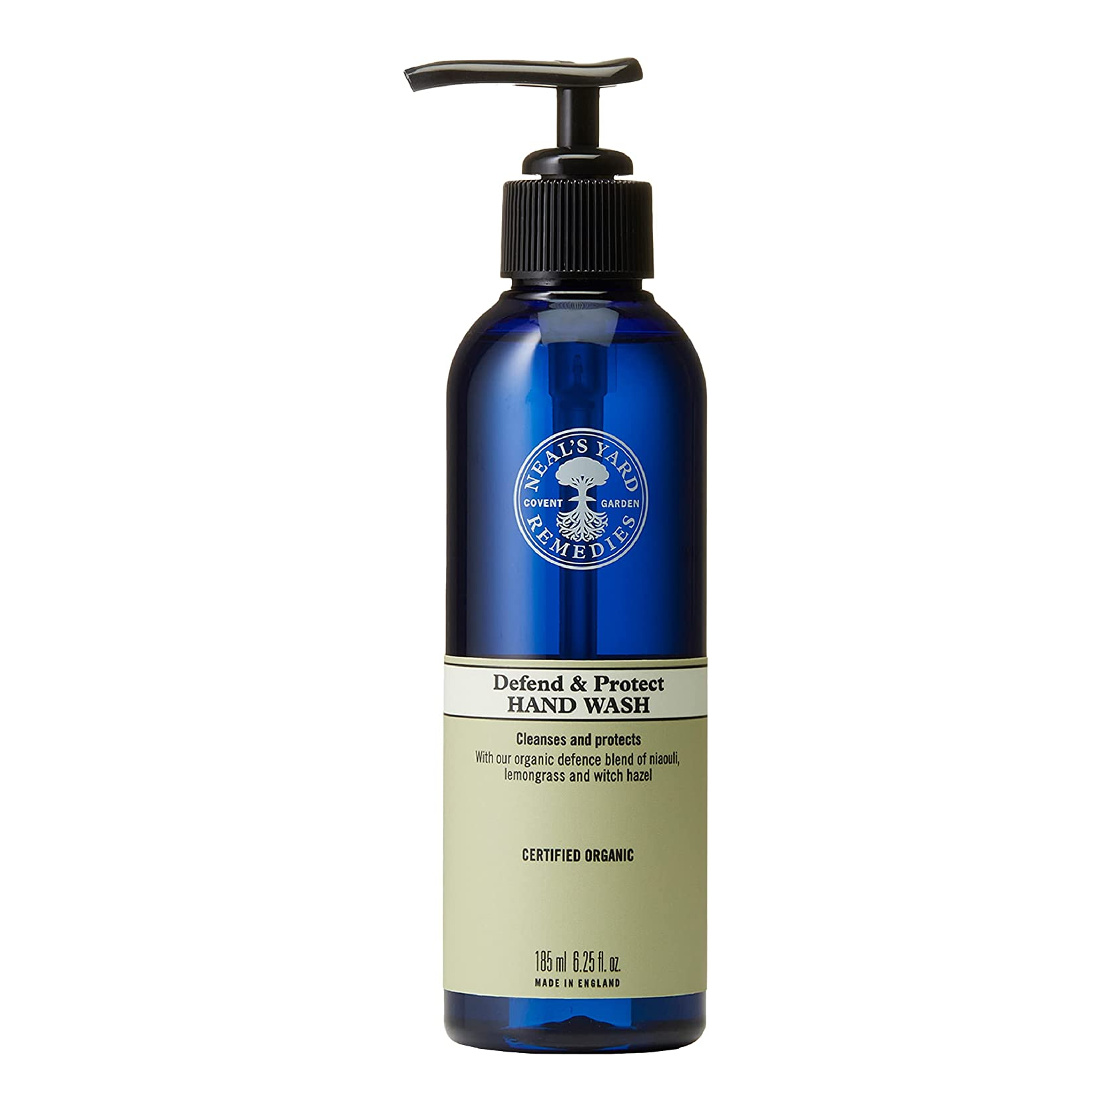 Neal's Yard Remedies Defend and Protect Hand Wash 185ml